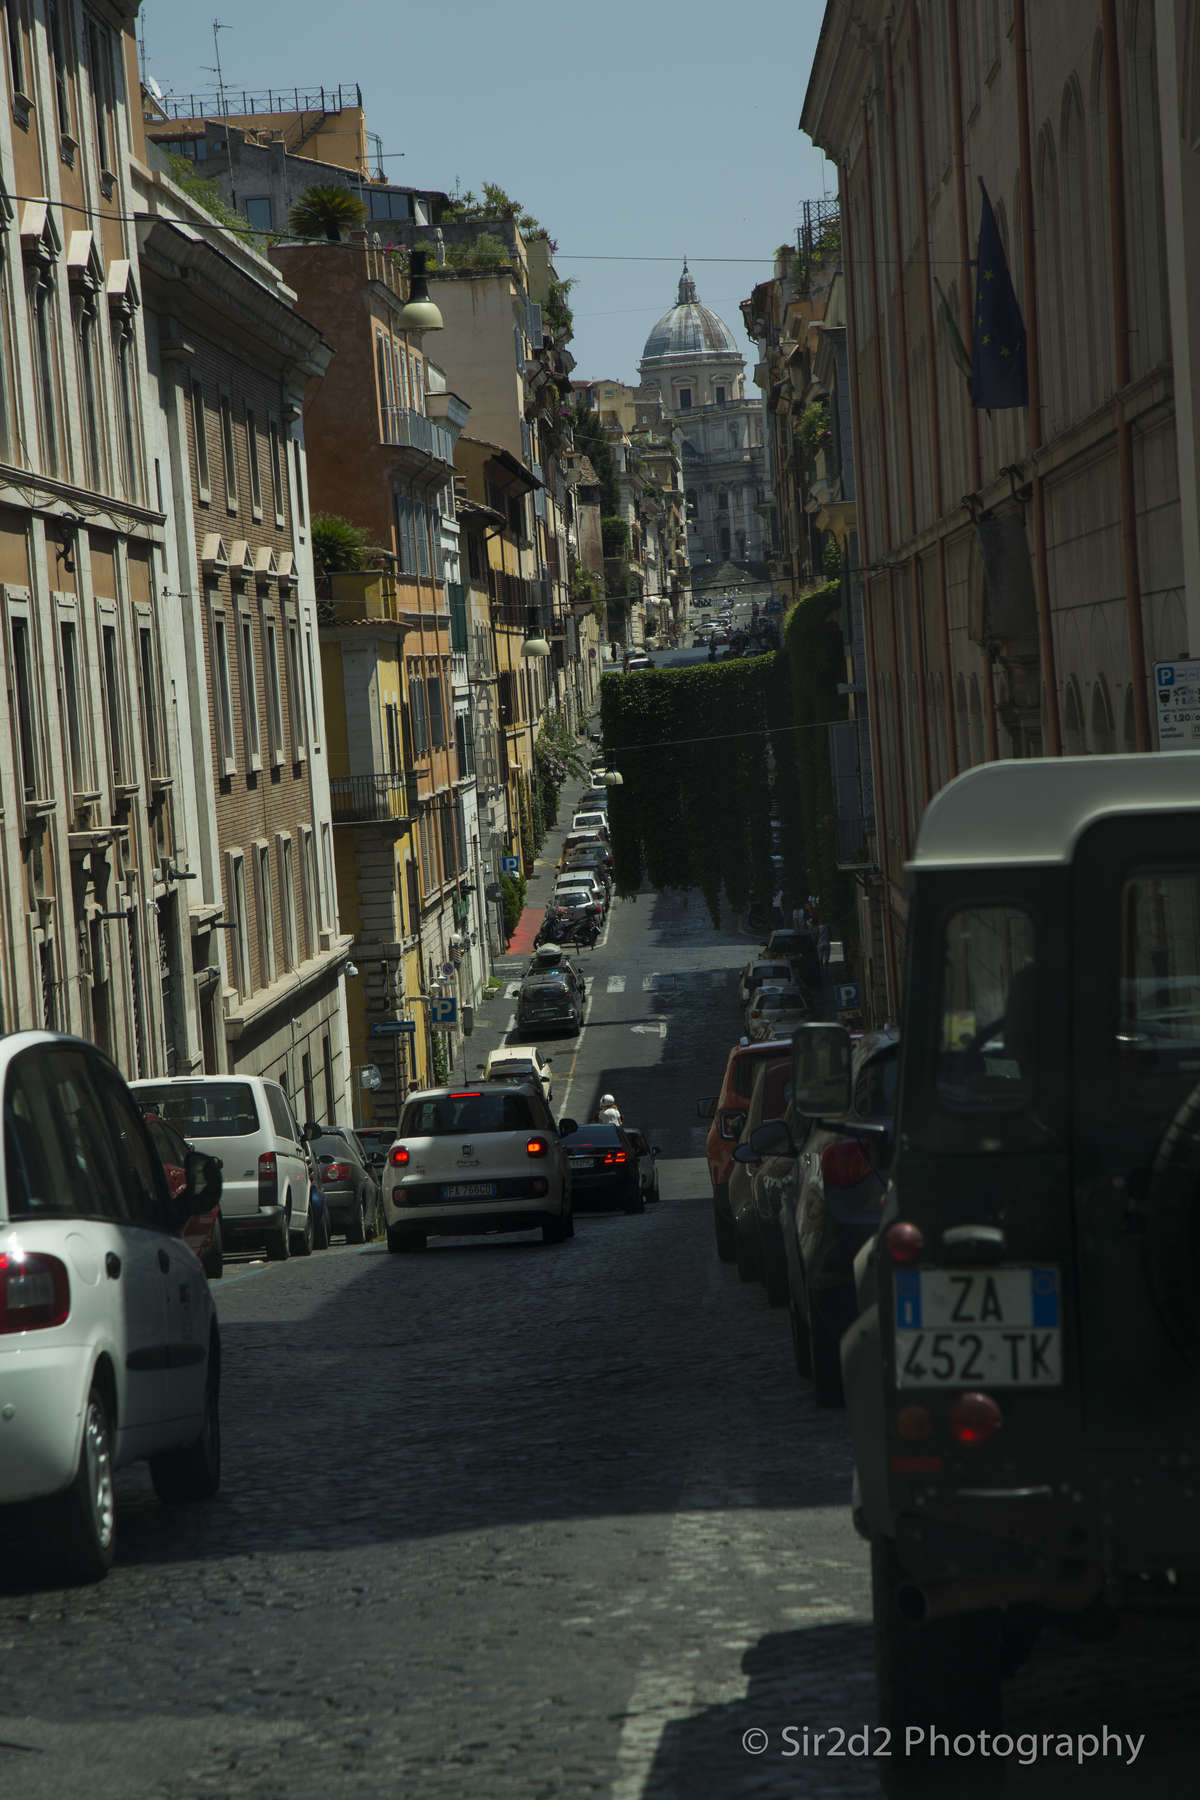 A Narrow street in the heart of Rome.